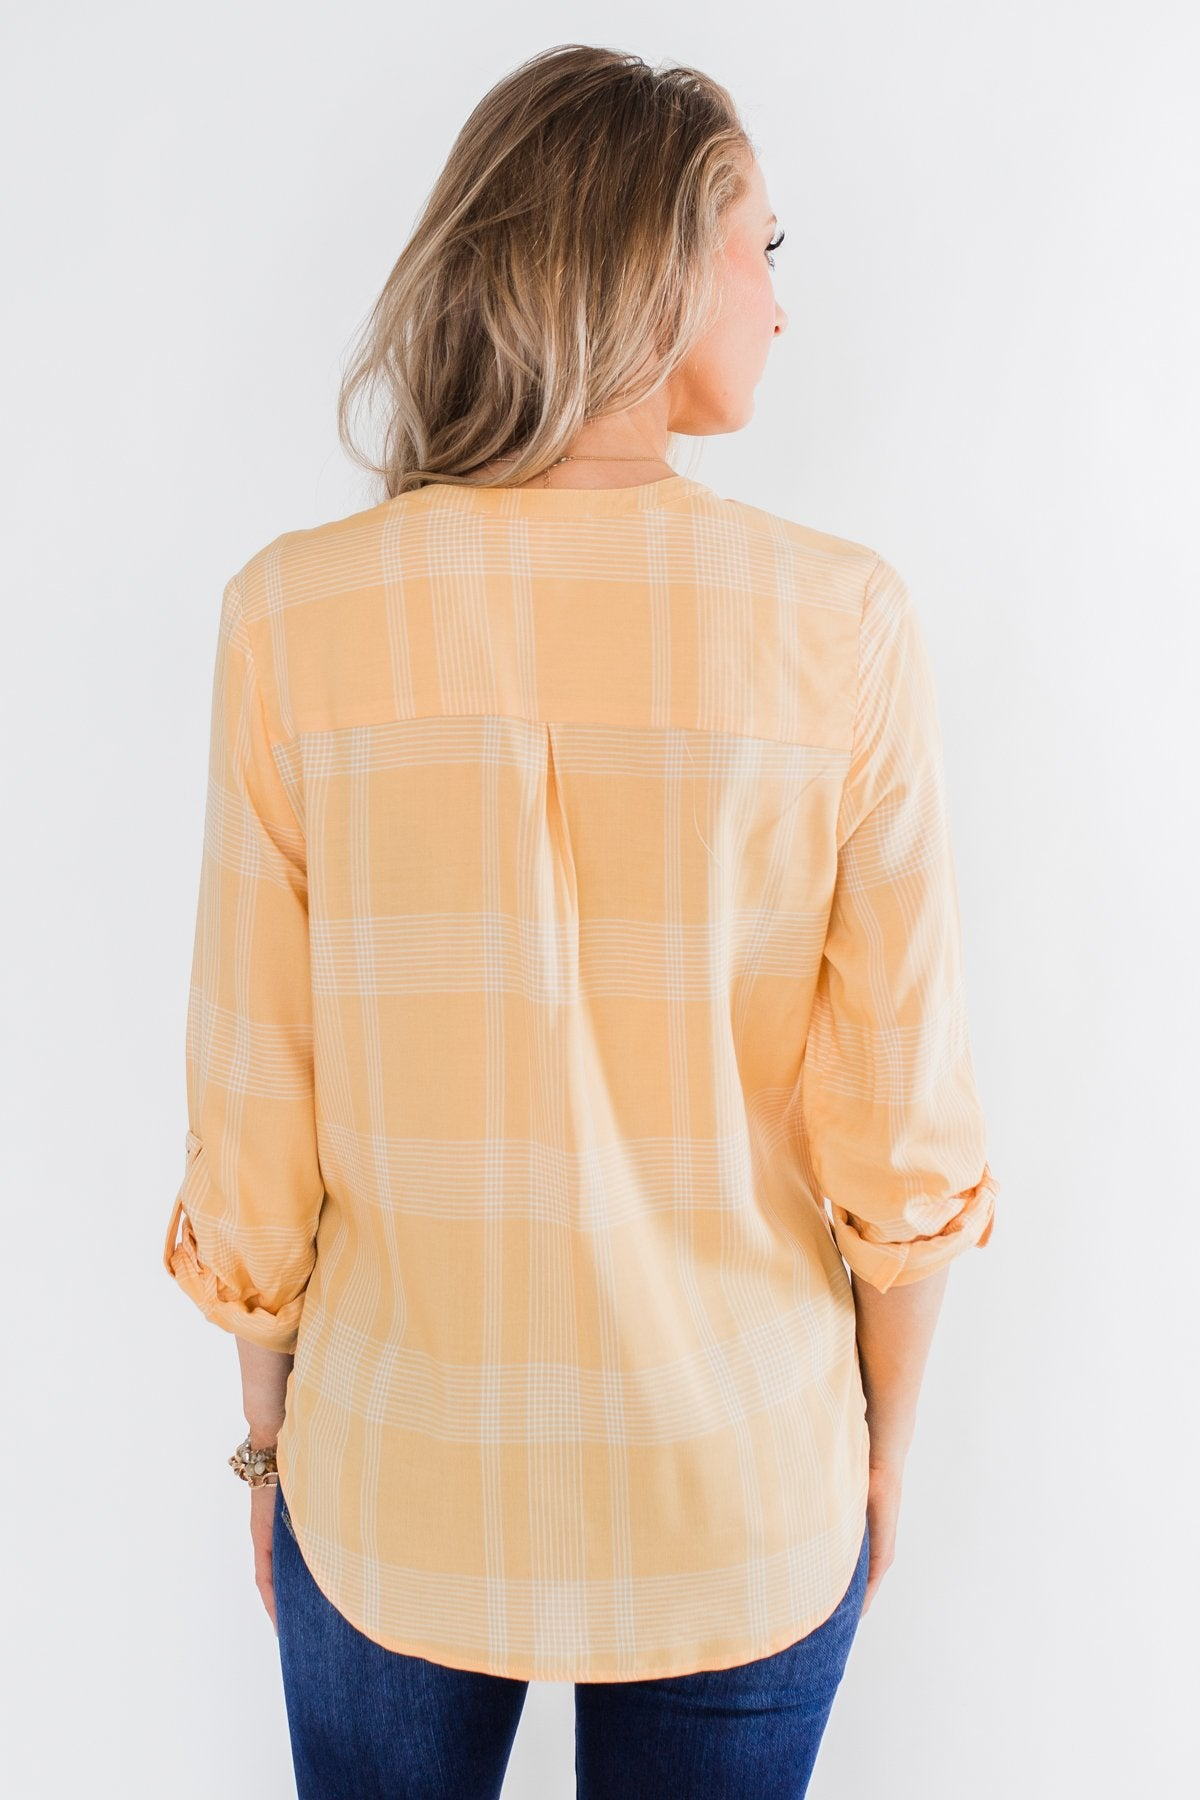 A Day In The Sun Light Flannel Blouse- Yellow